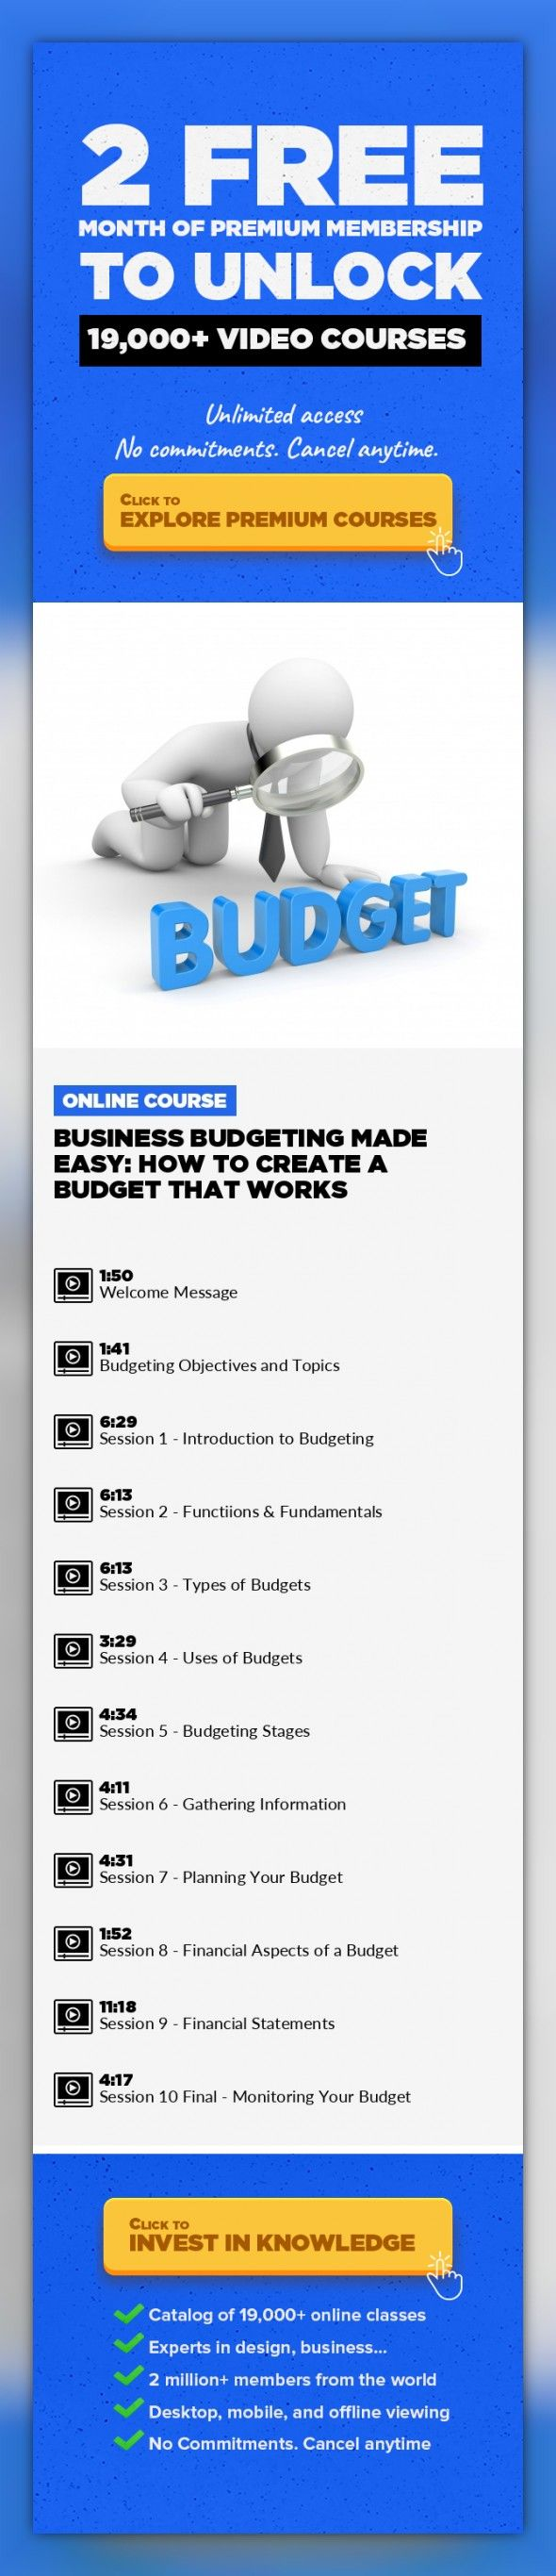 business budgeting made easy how to create a budget that works business pricing